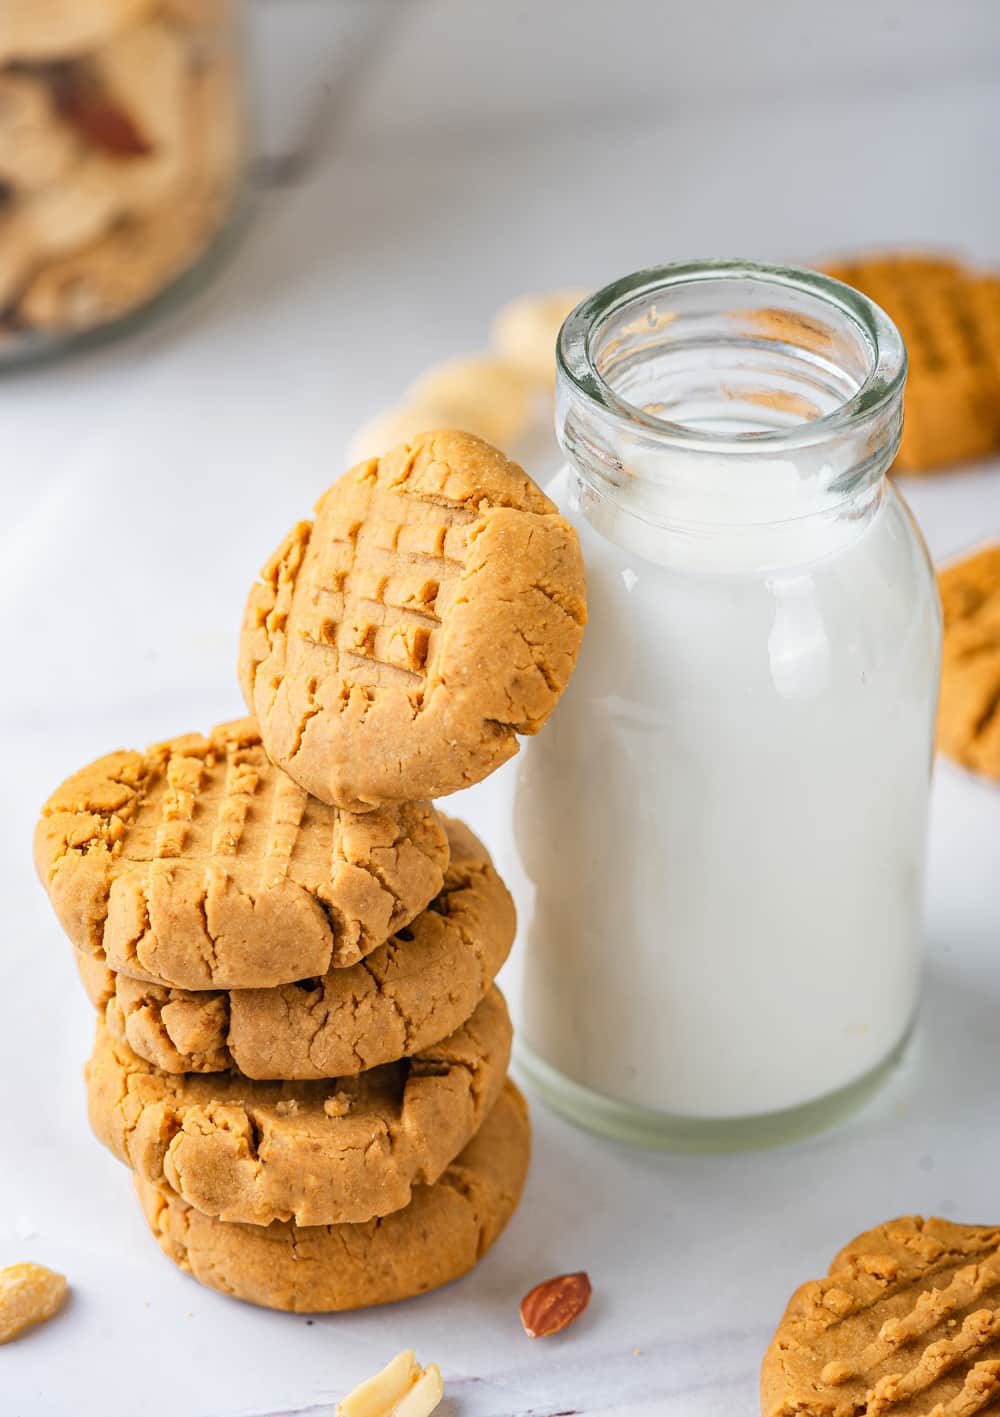 A stack of four vegan peanut butter cookies with a fifth cookie on its side leaning against a tall glass jar of milk. The glass jar of milk is to the right of the stack of cookies. Everything is on top of a white counter.